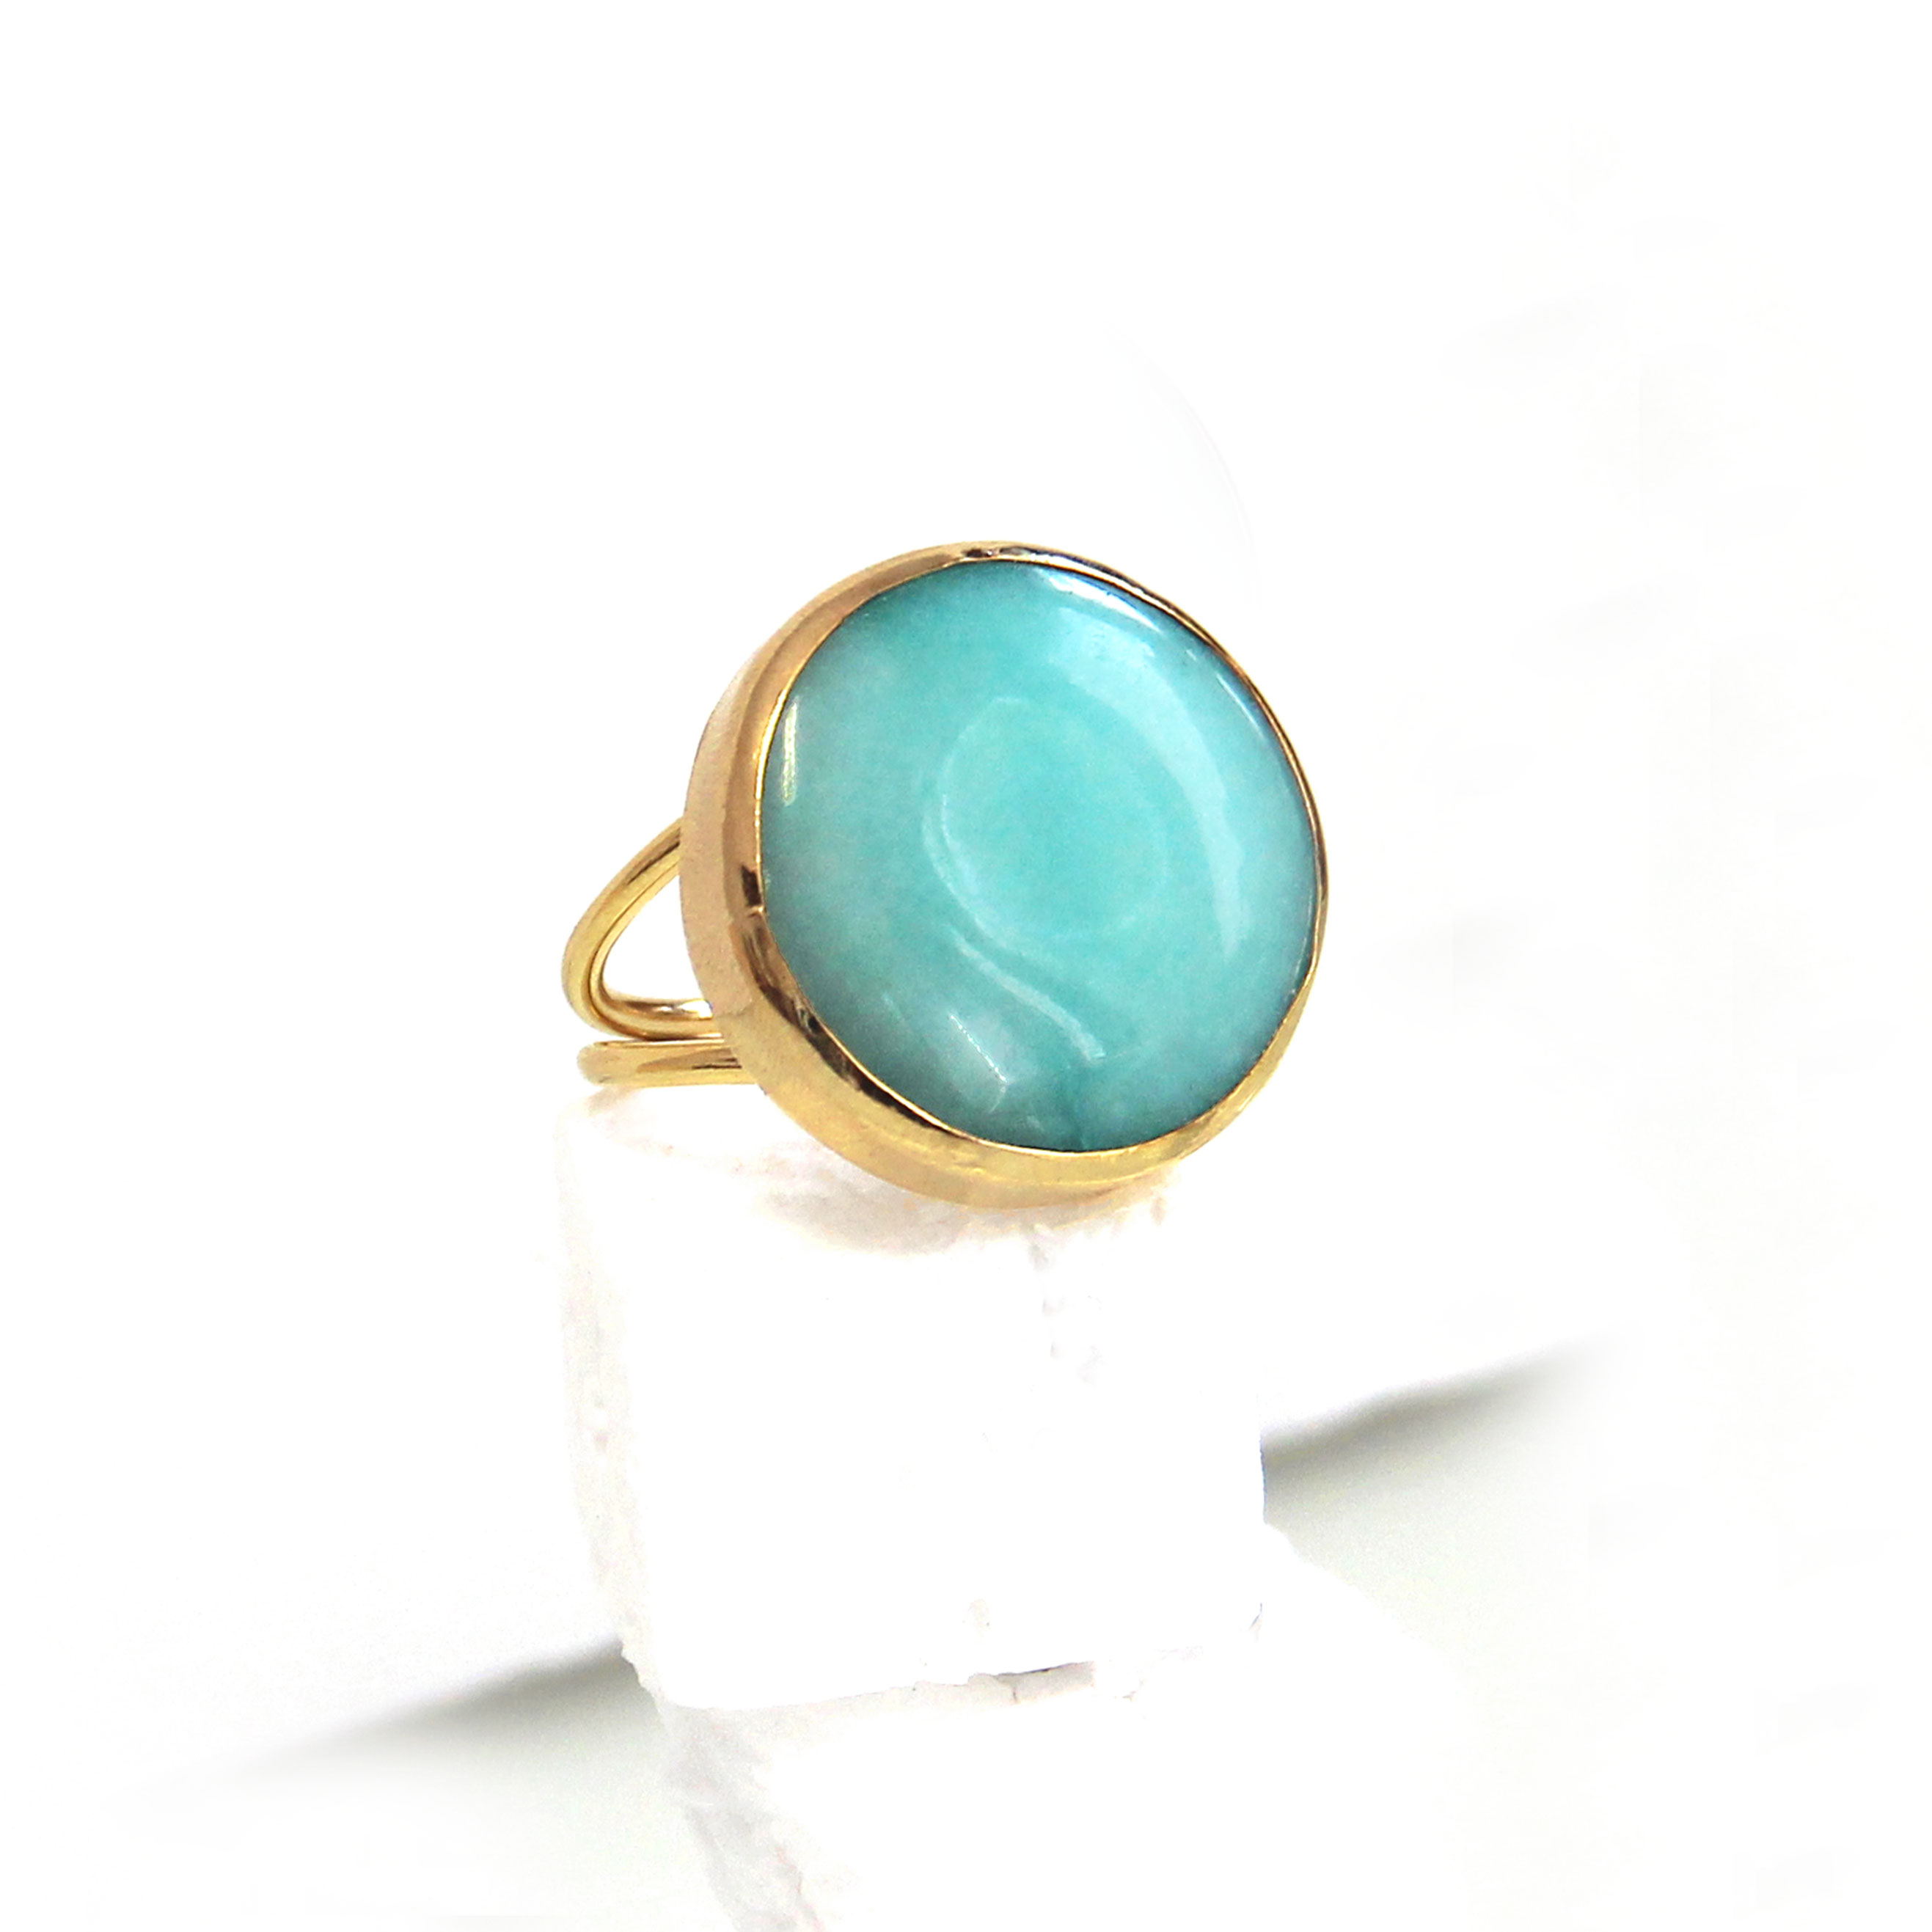 teal pin moda an by p peruvian opalina ring monique waterfall operandi rings